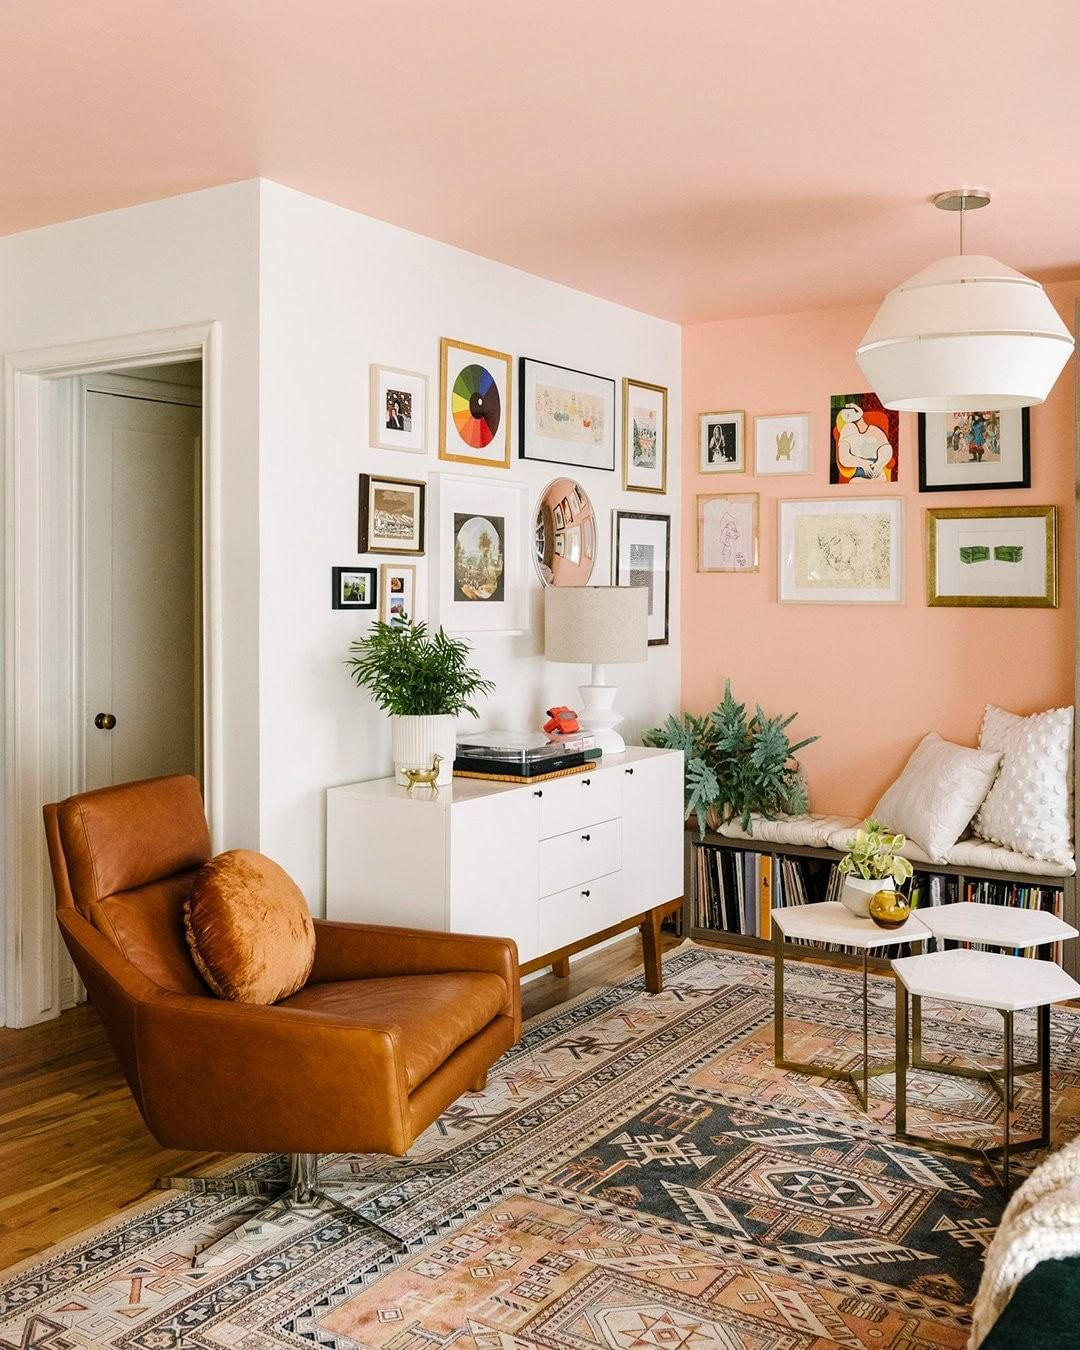 West Elm Furniture Decor On Instagram Think Pink We Re In Love With This Peachy Ceiling Wraparound Galler Apartment Decor Interior Cheap Home Decor #peach #living #room #decor